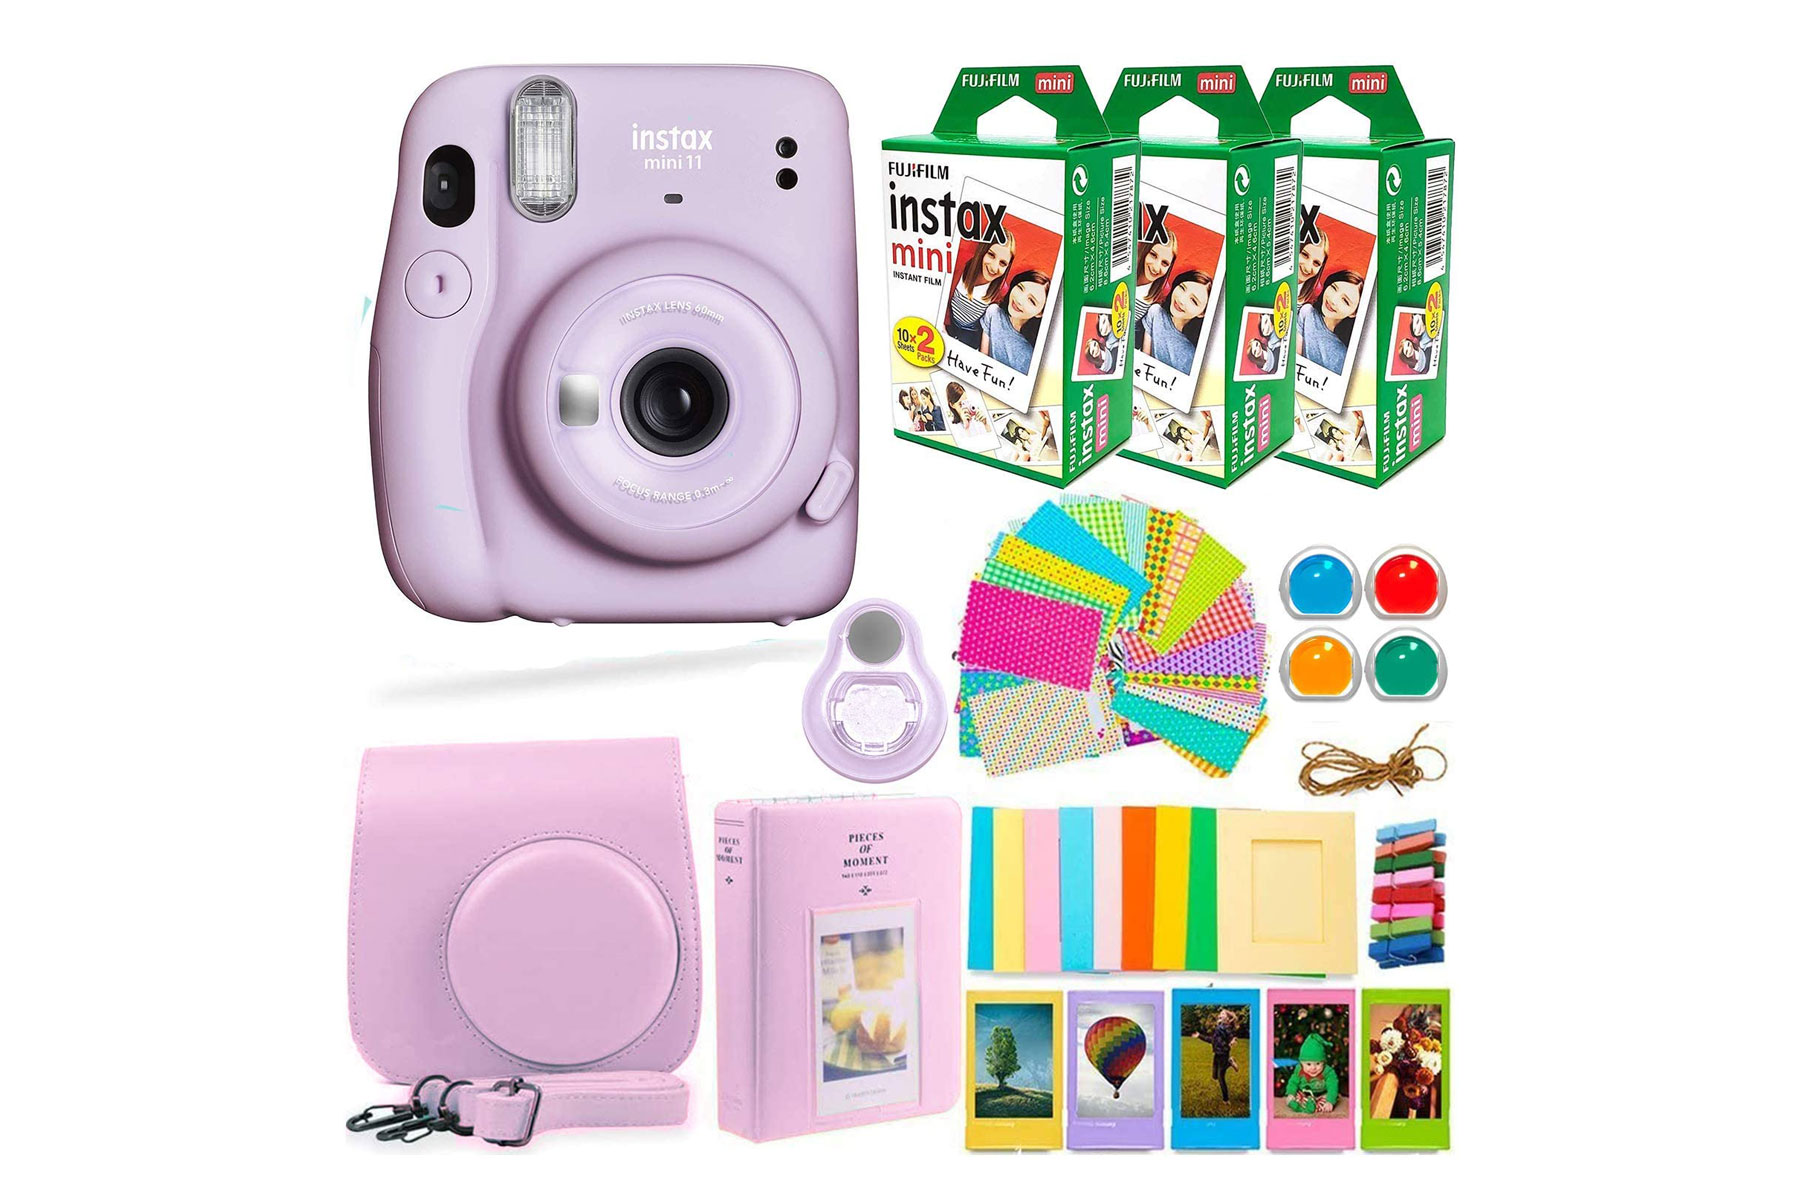 Fujifilm instax camera and accessories set